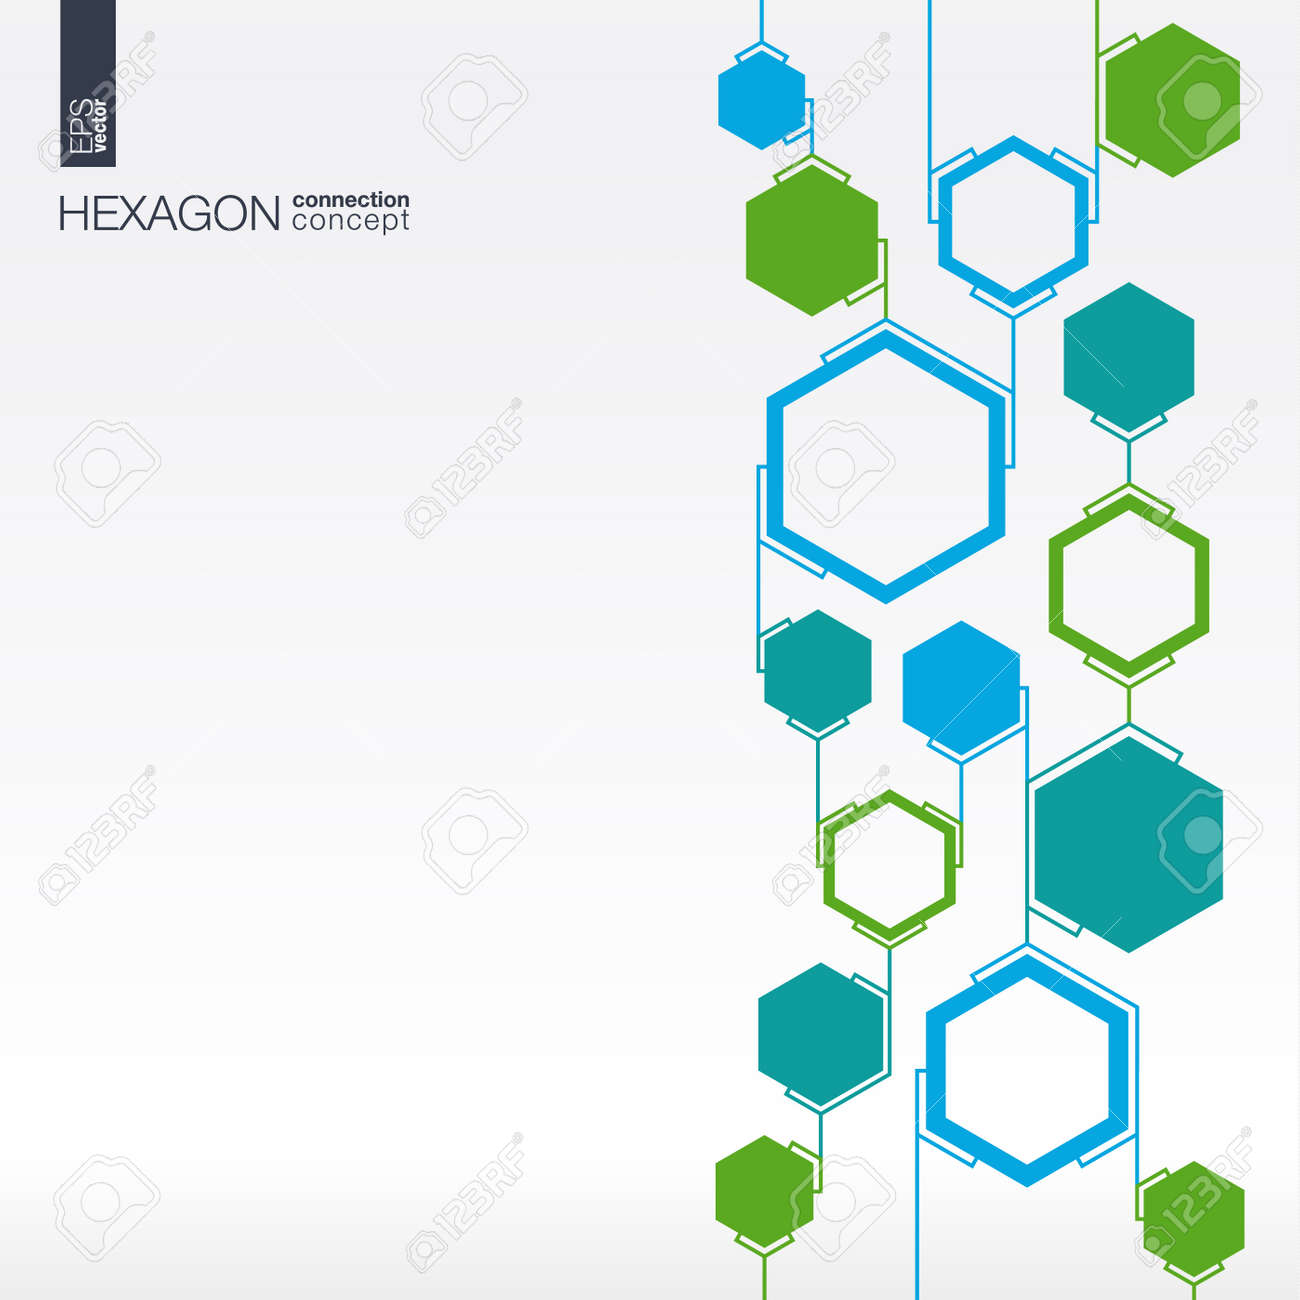 Abstract hexagon background with lines and integrated polygons for Business Company, medical, healthcare, network, connect, social media and global concepts. - 43377676